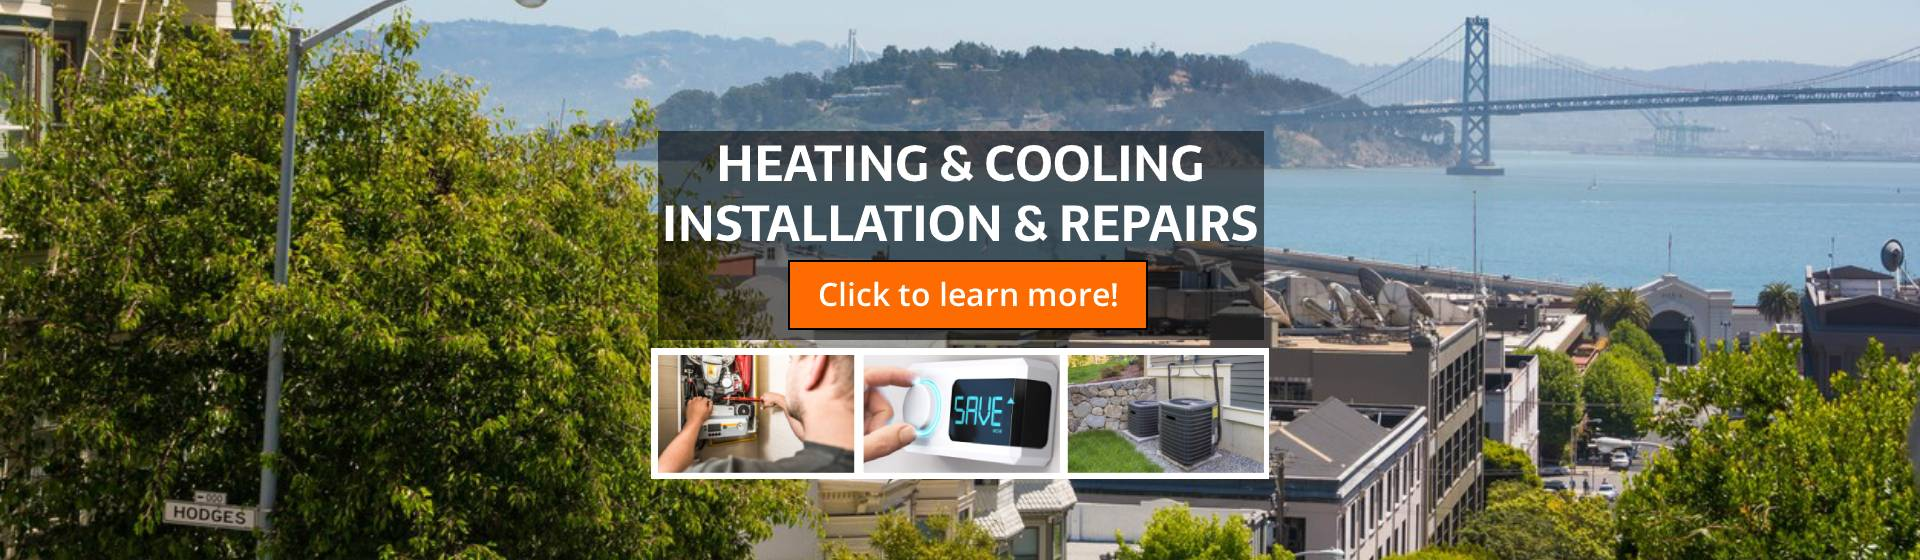 BAY AREA HVAC INSTALLATION